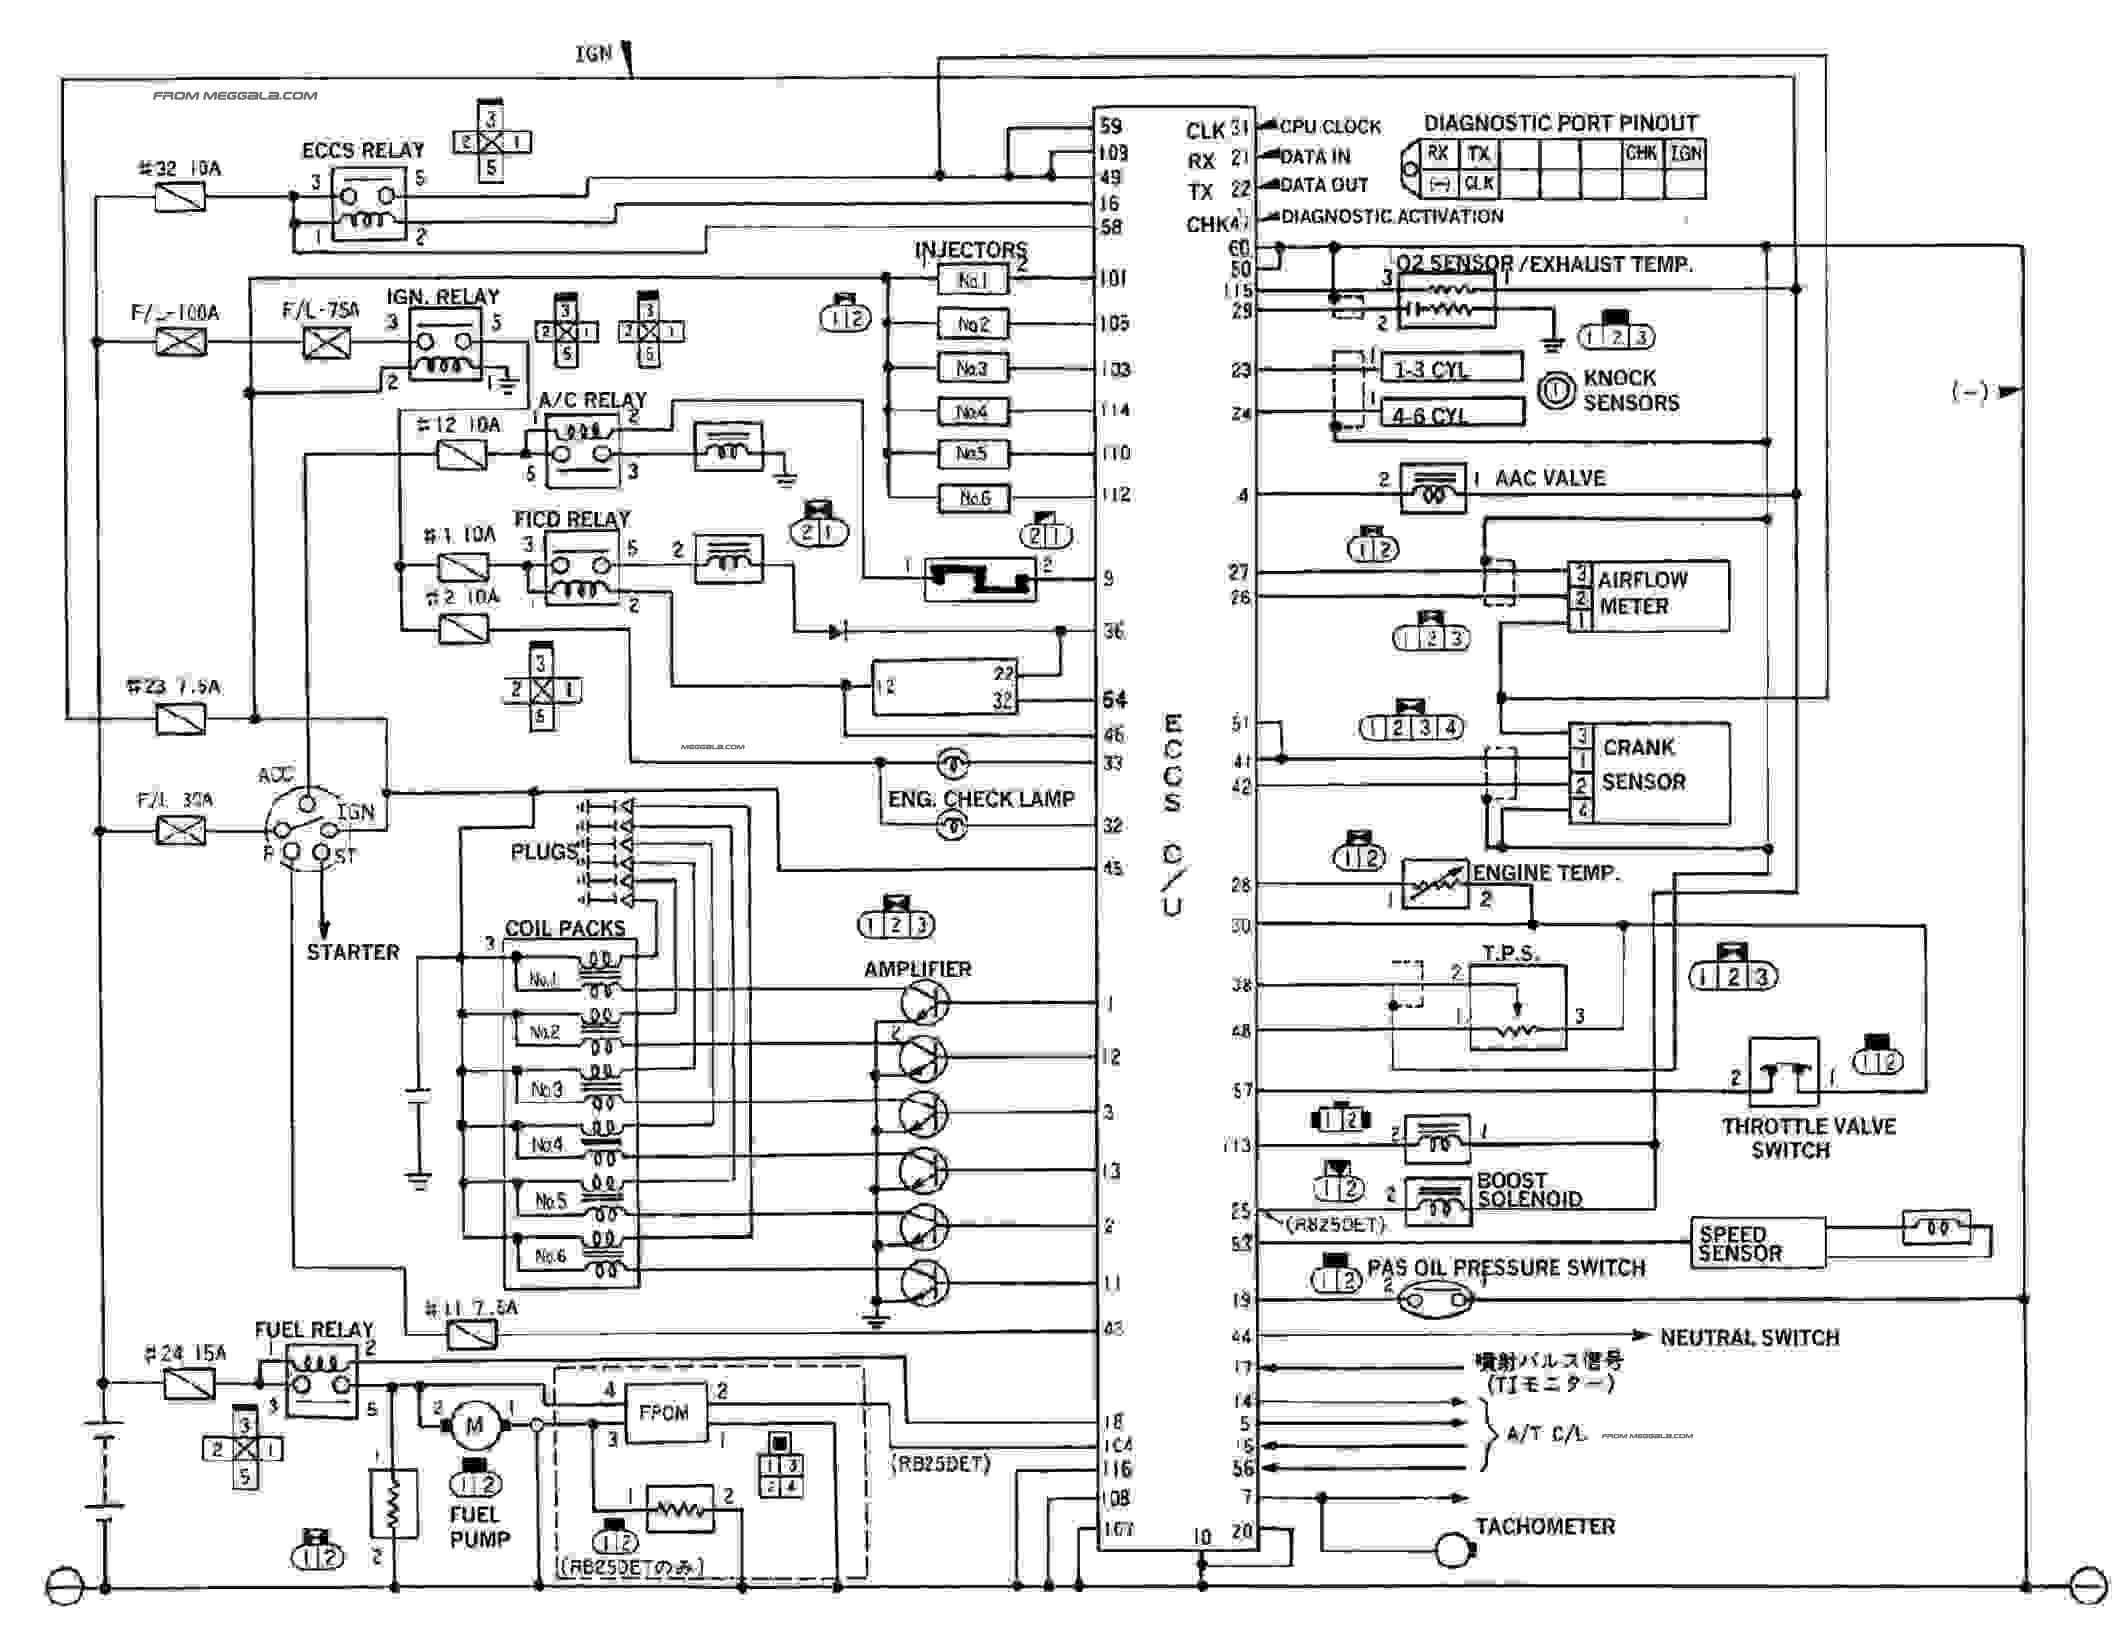 nissan rb20 wiring diagram - show wiring diagram lover -  lover.controversoquotidiano.it  controversoquotidiano.it